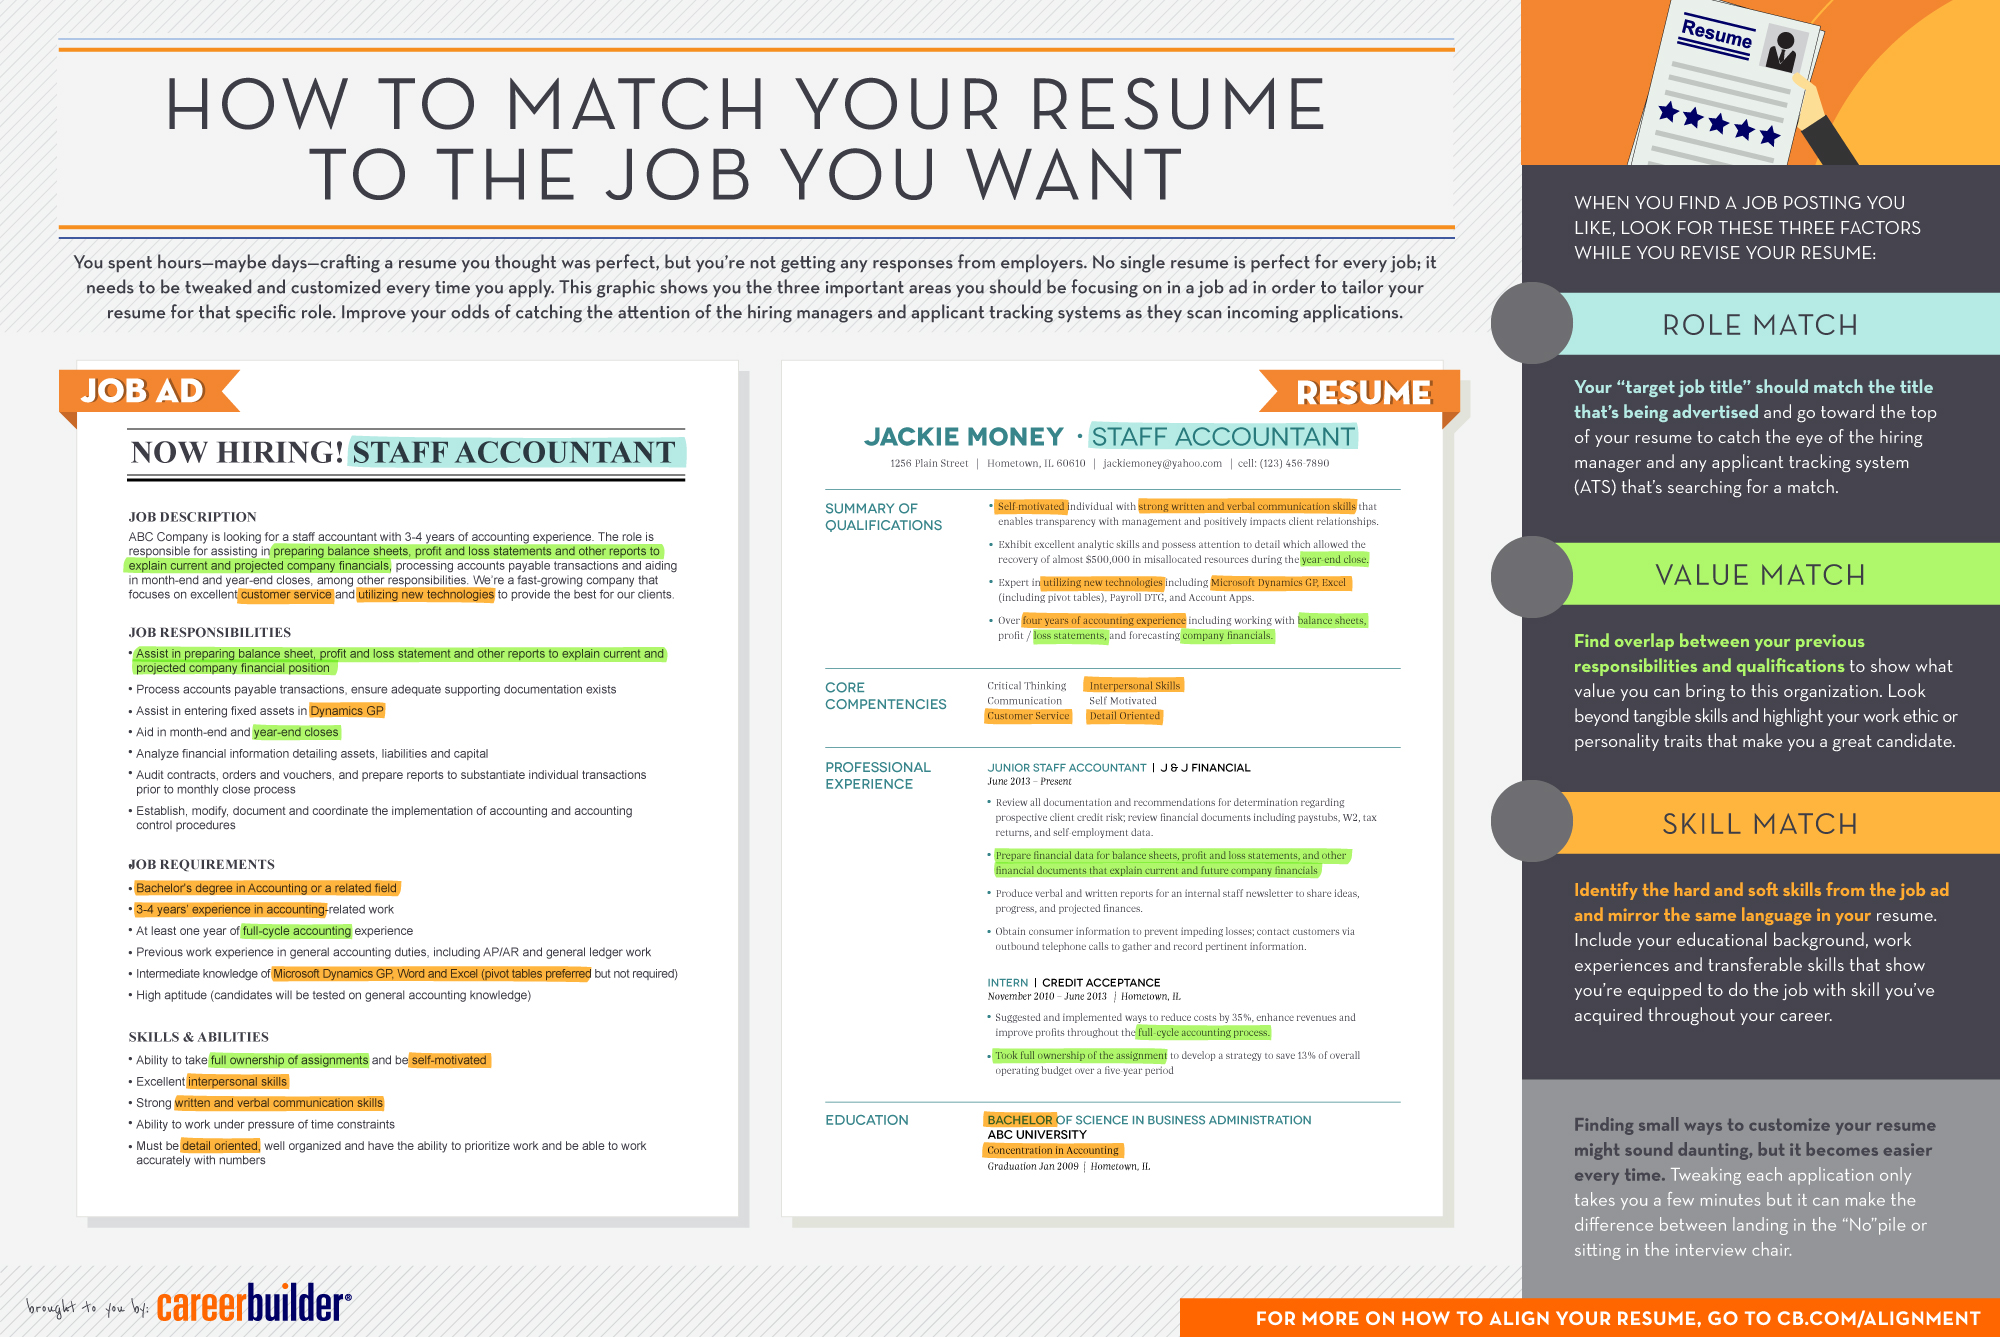 IFO 0044_CustomResume_Snippet  Careerbuilder Resume Search